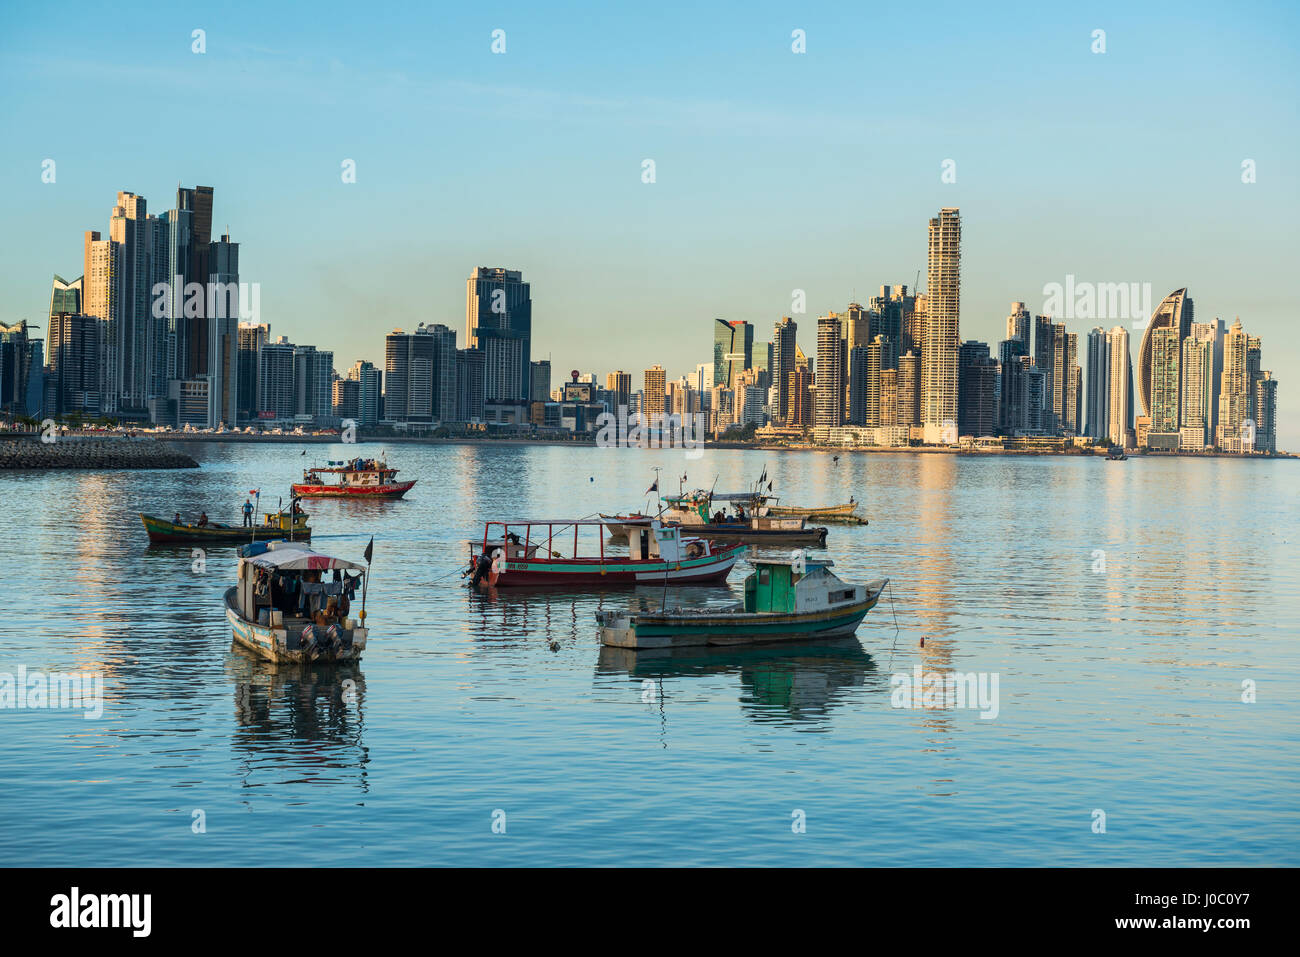 Little fishing boats and the skyline of Panama City, Panama, Central America - Stock Image